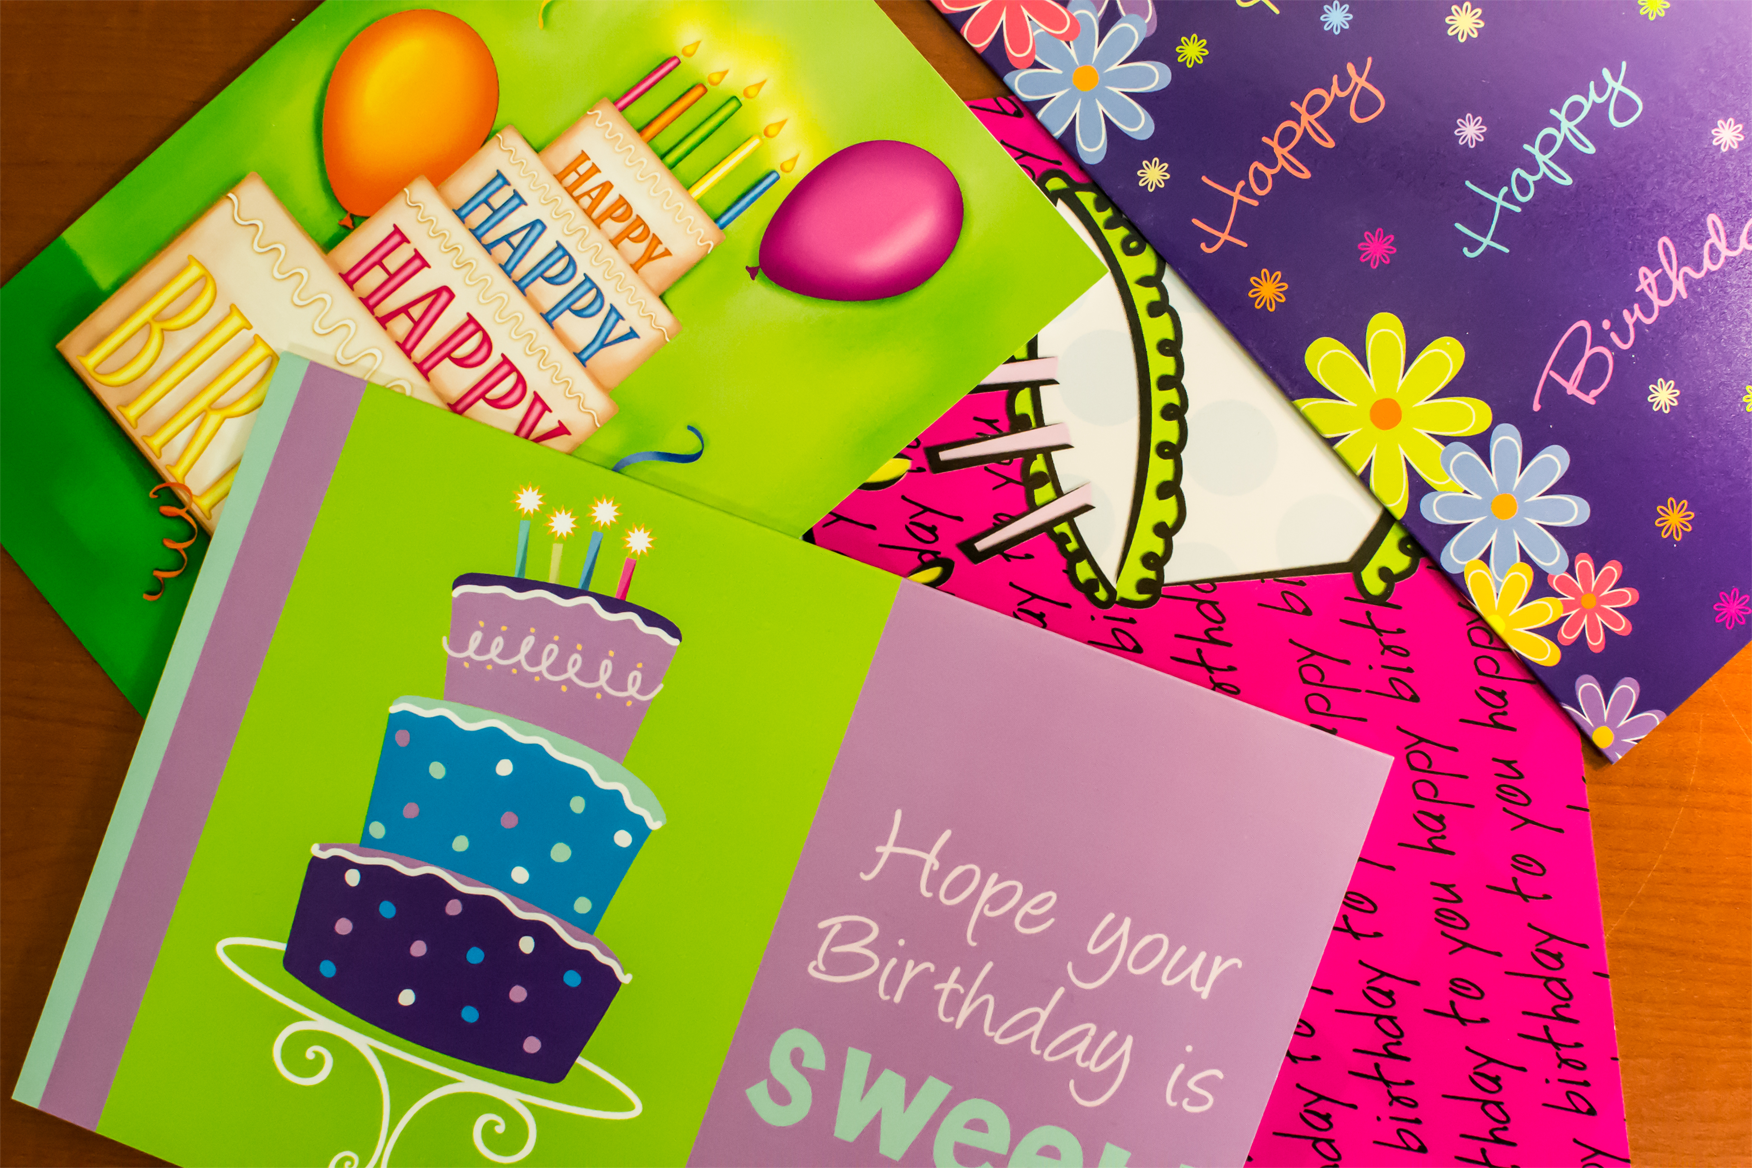 Spot on drawingboard blog we offer a wide selection of business greeting cards for both corporate and personal use including anniversary sympathy get well thank you and birthday colourmoves Images